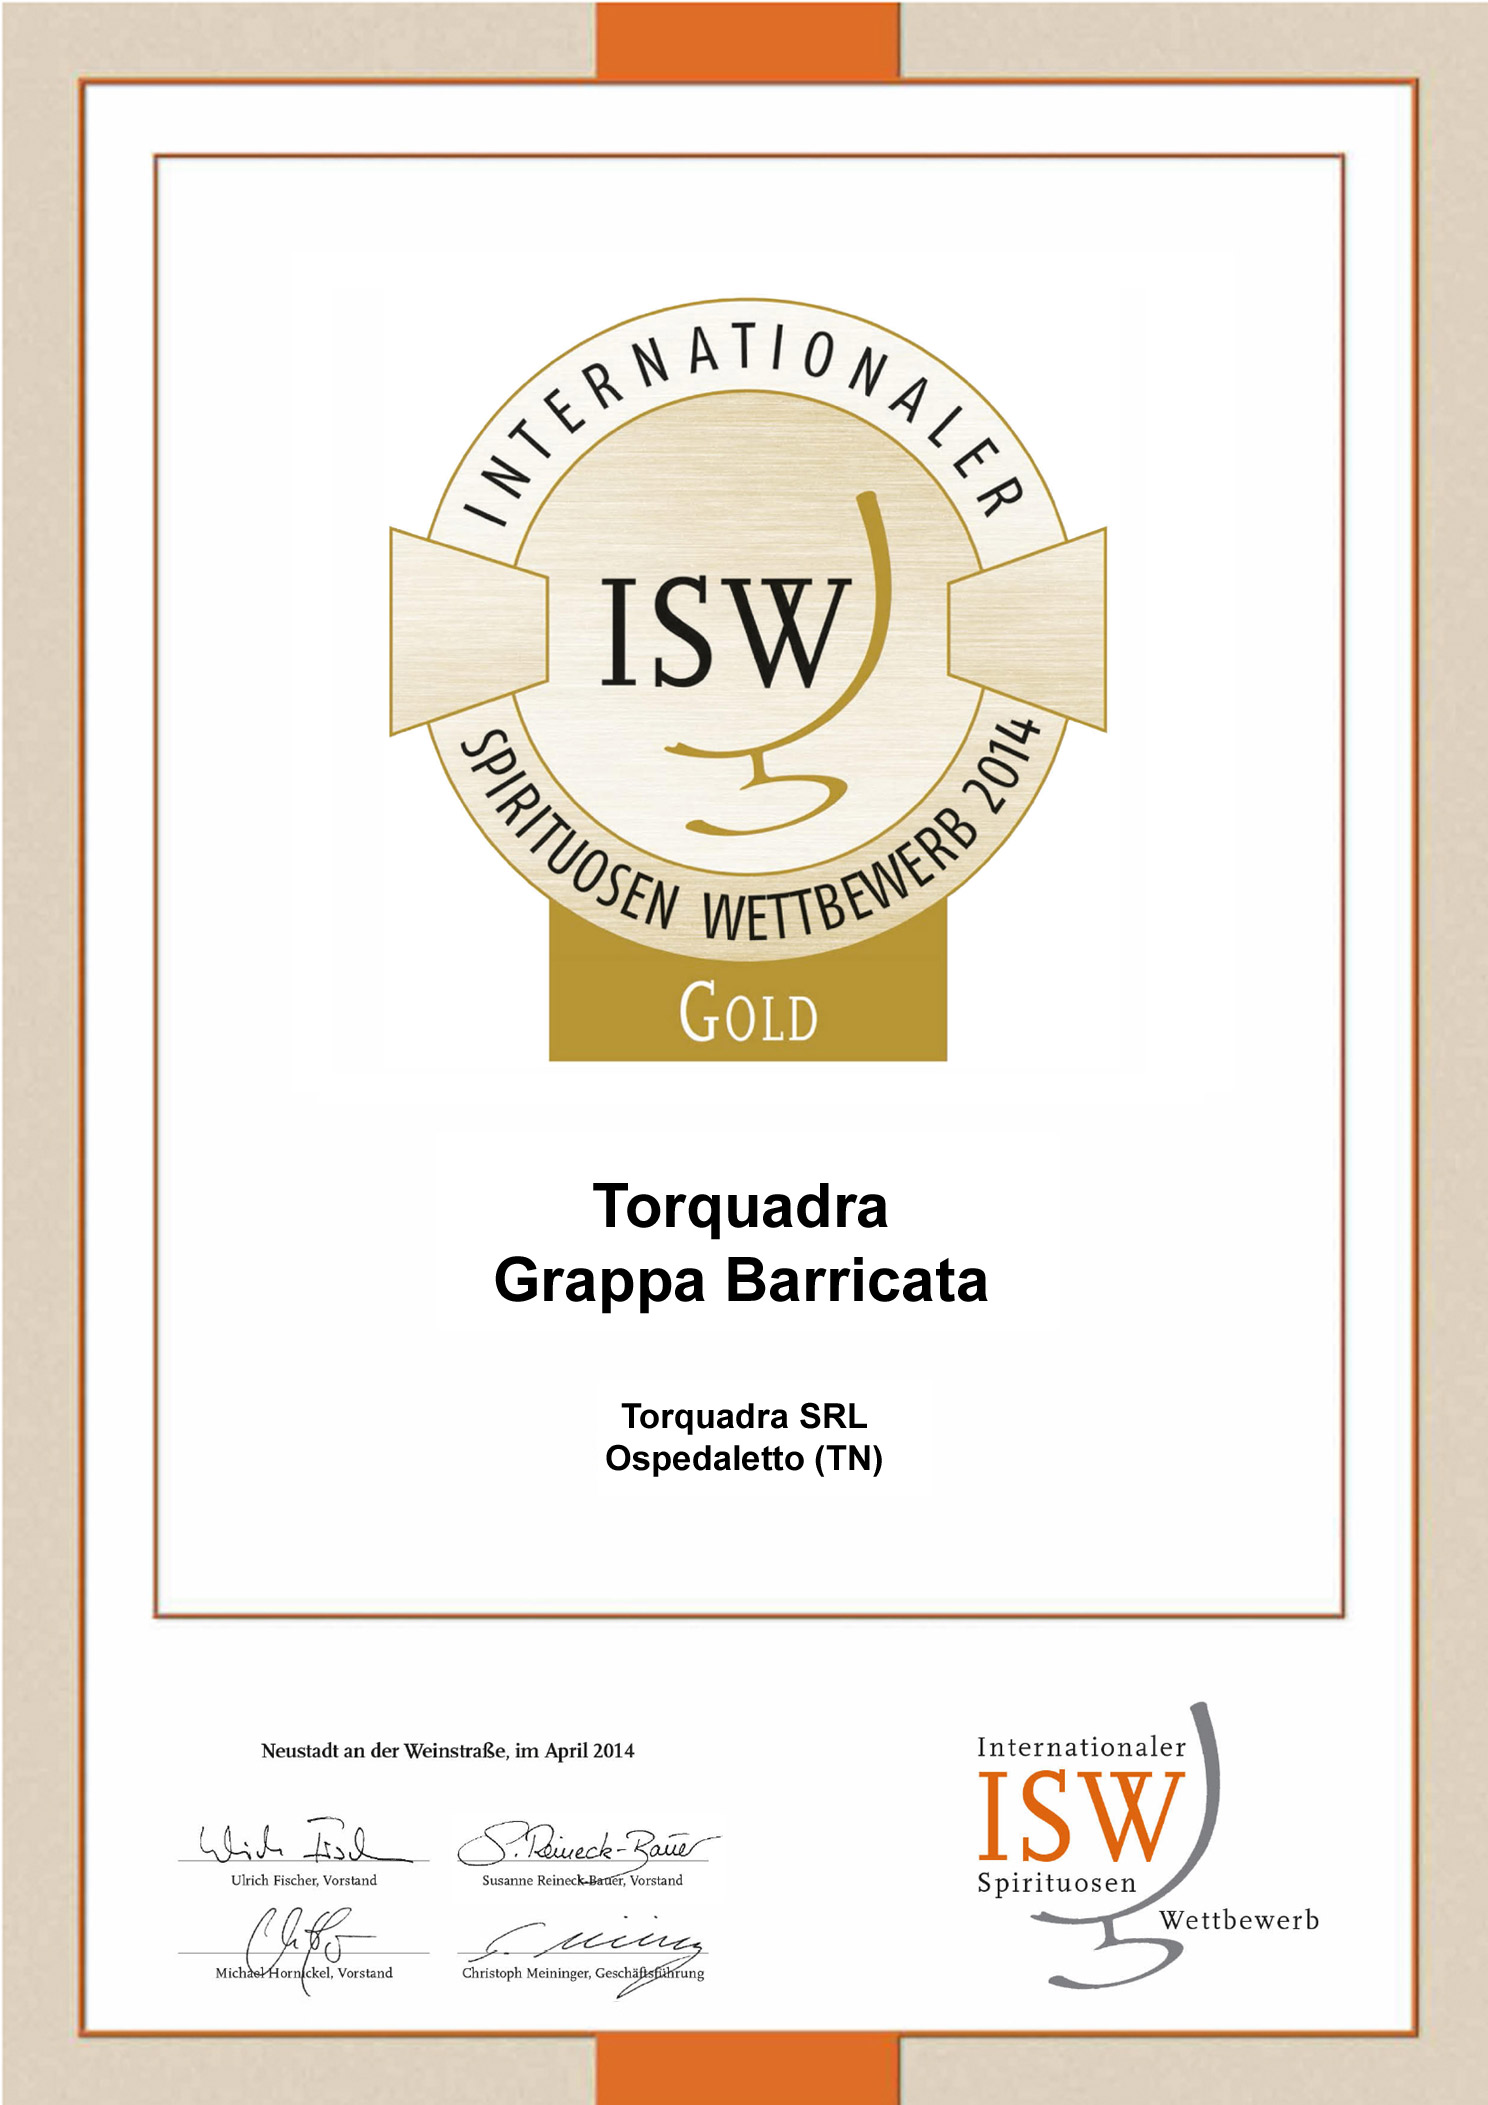 Gold Medal ISW 2014